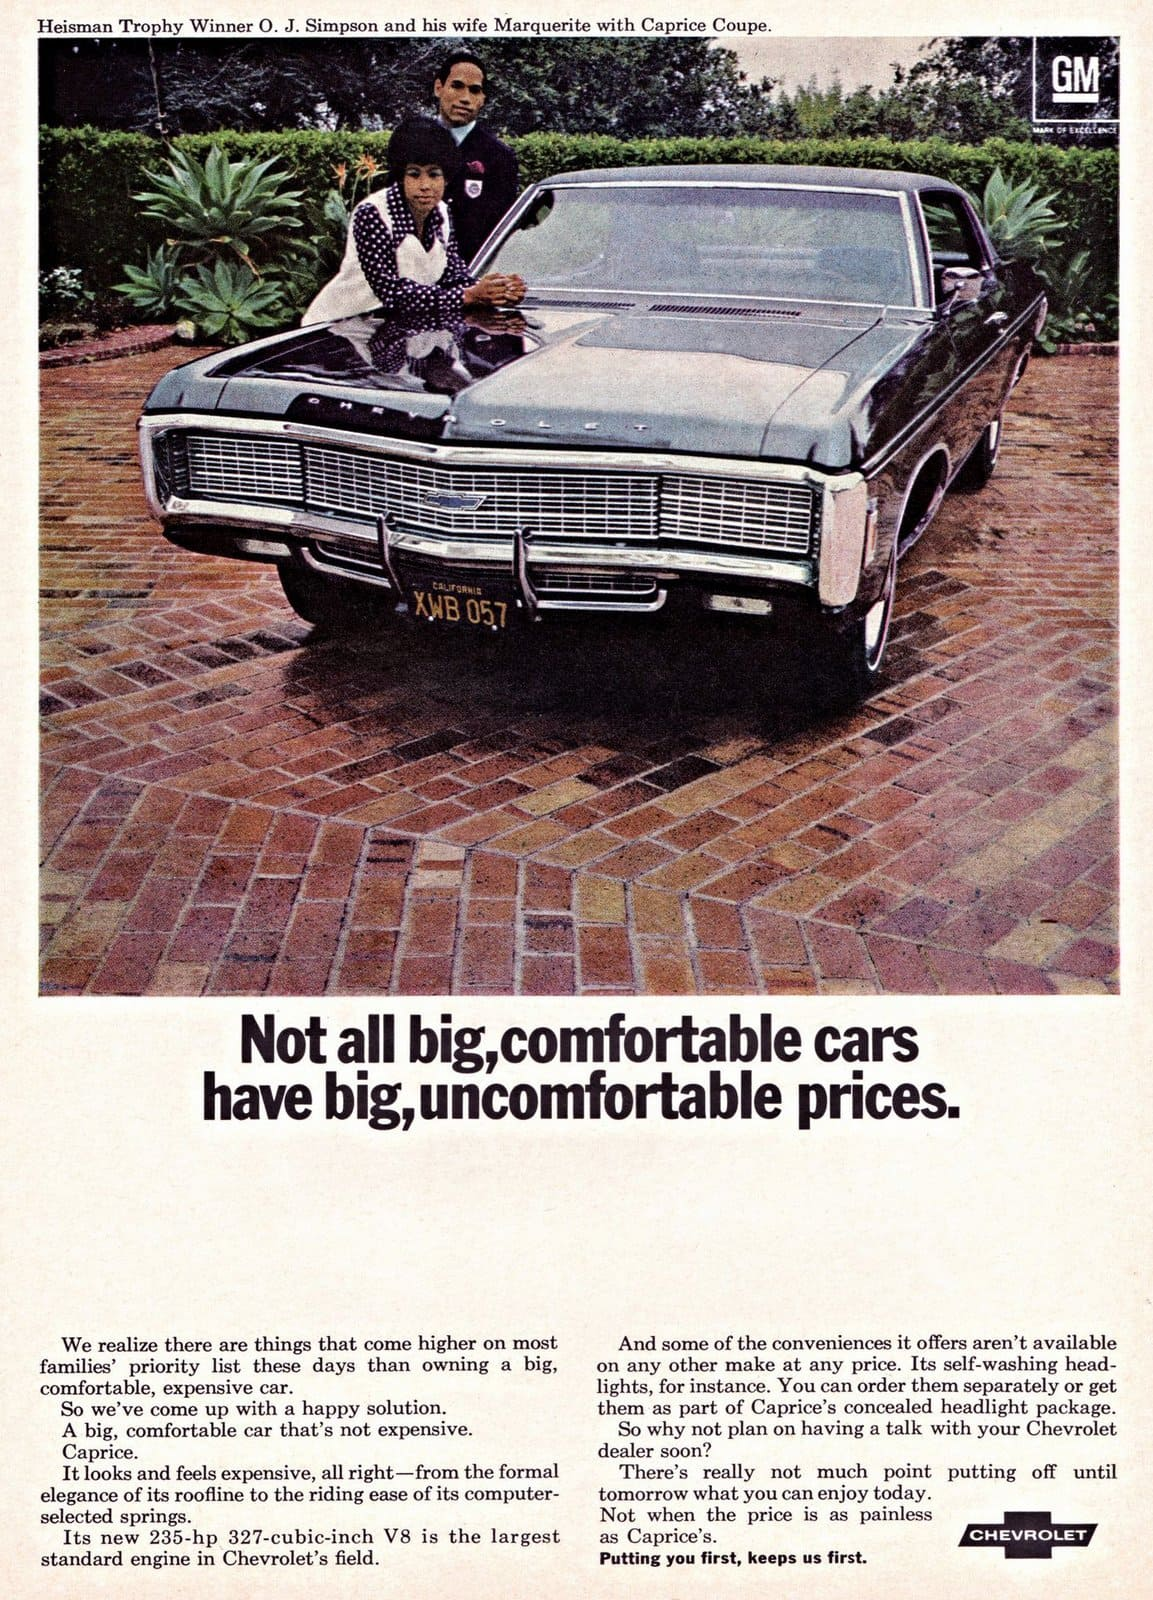 Vintage OJ Simpson and Chevrolet Caprice Coupe car